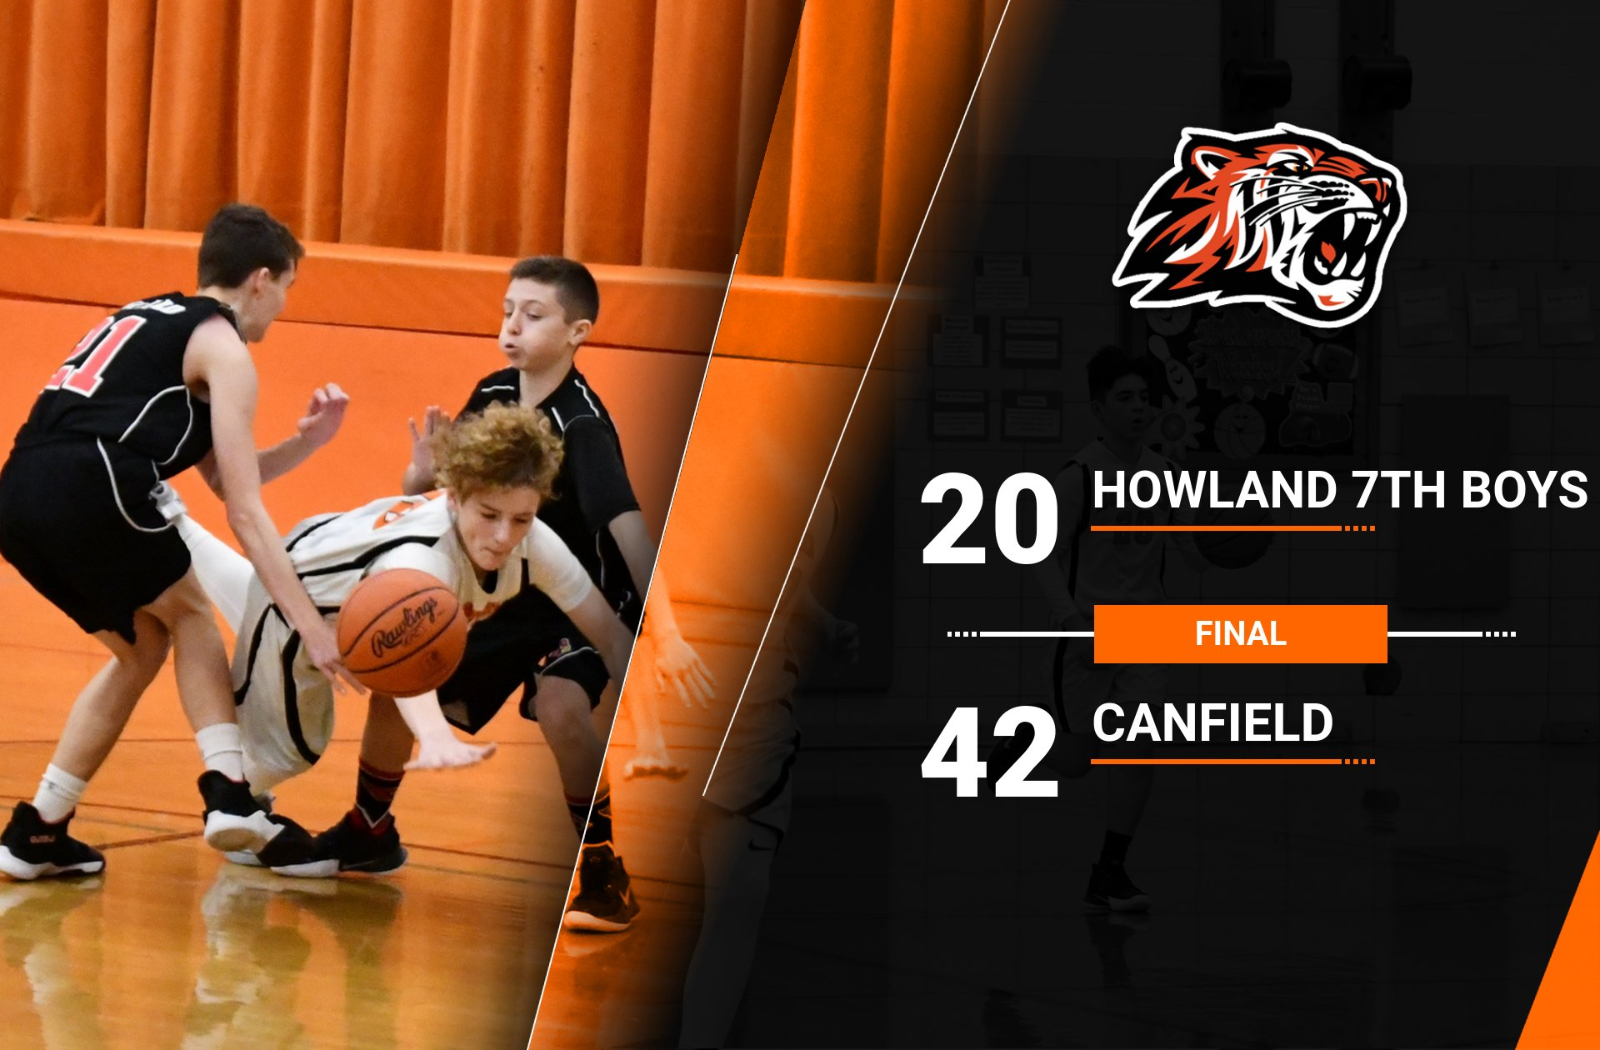 7th Boys Lose to Canfield